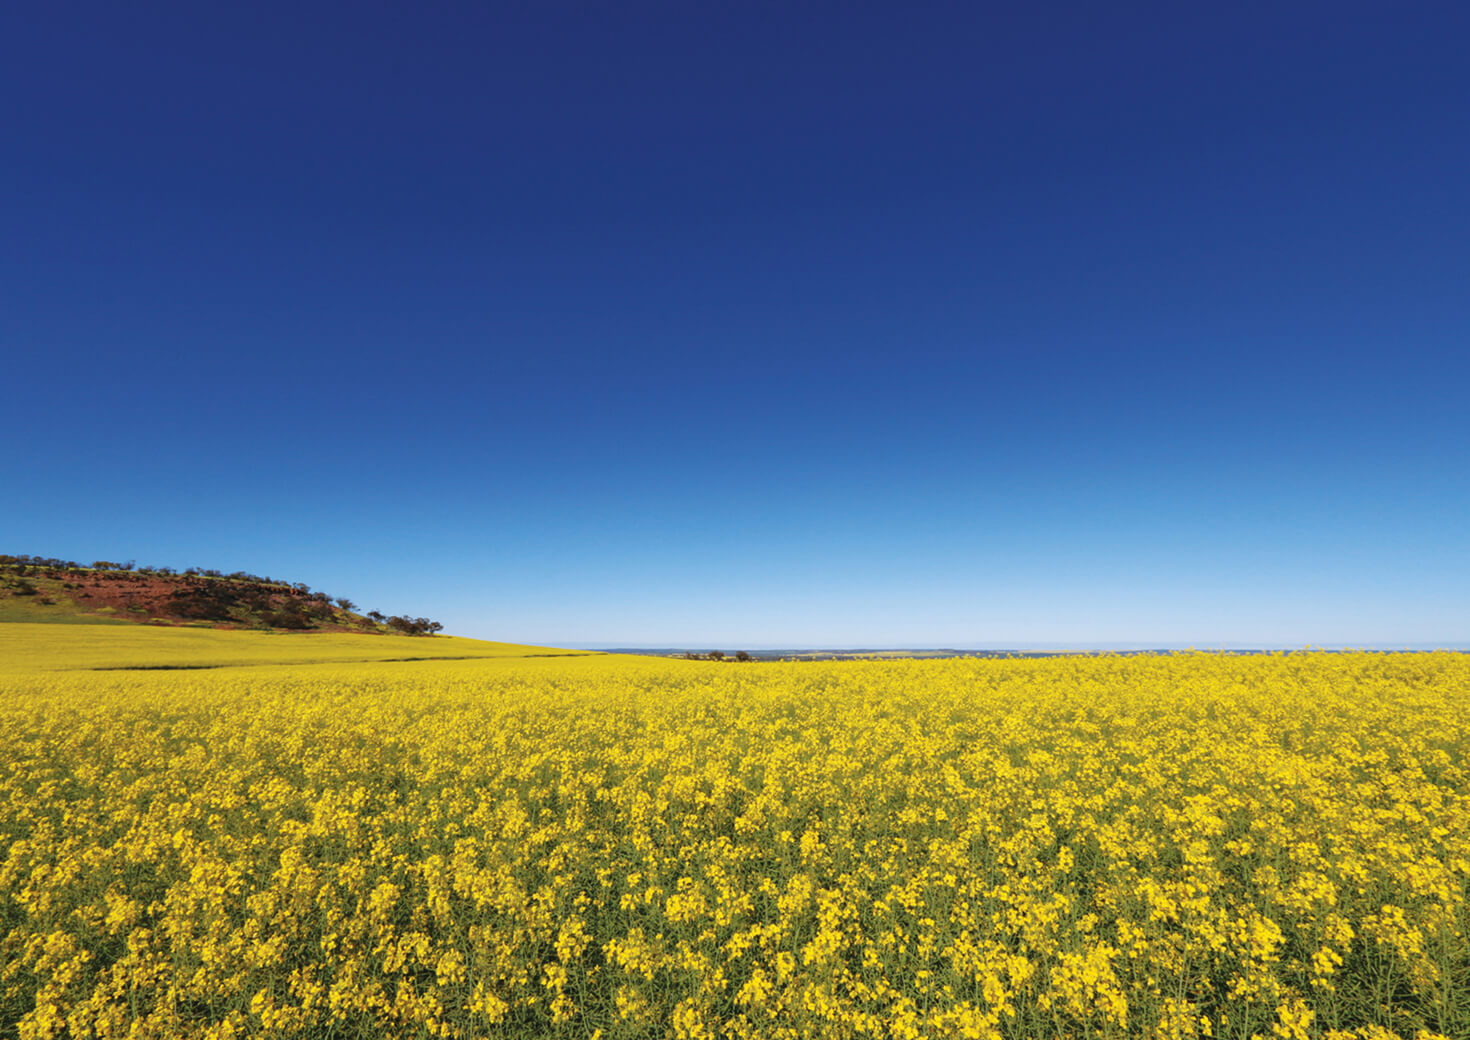 A field of yellow wildflowers and a blue sky